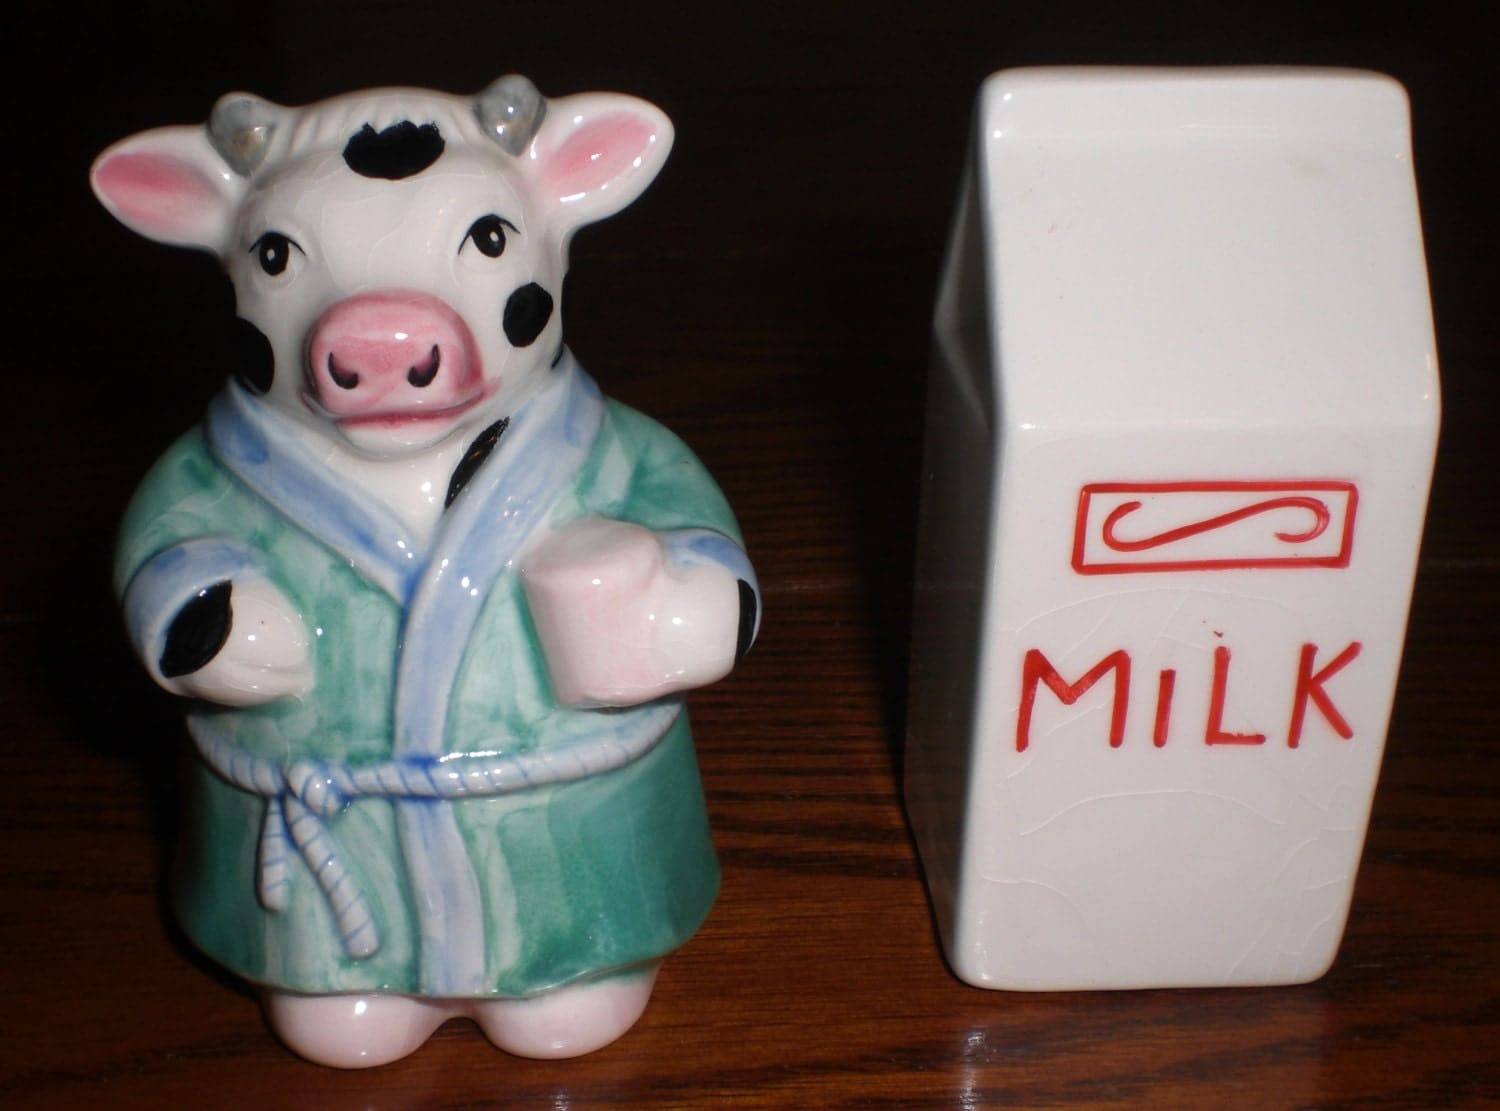 Cow And Milk Salt And Pepper Shakers Fun By Abundancerecycled